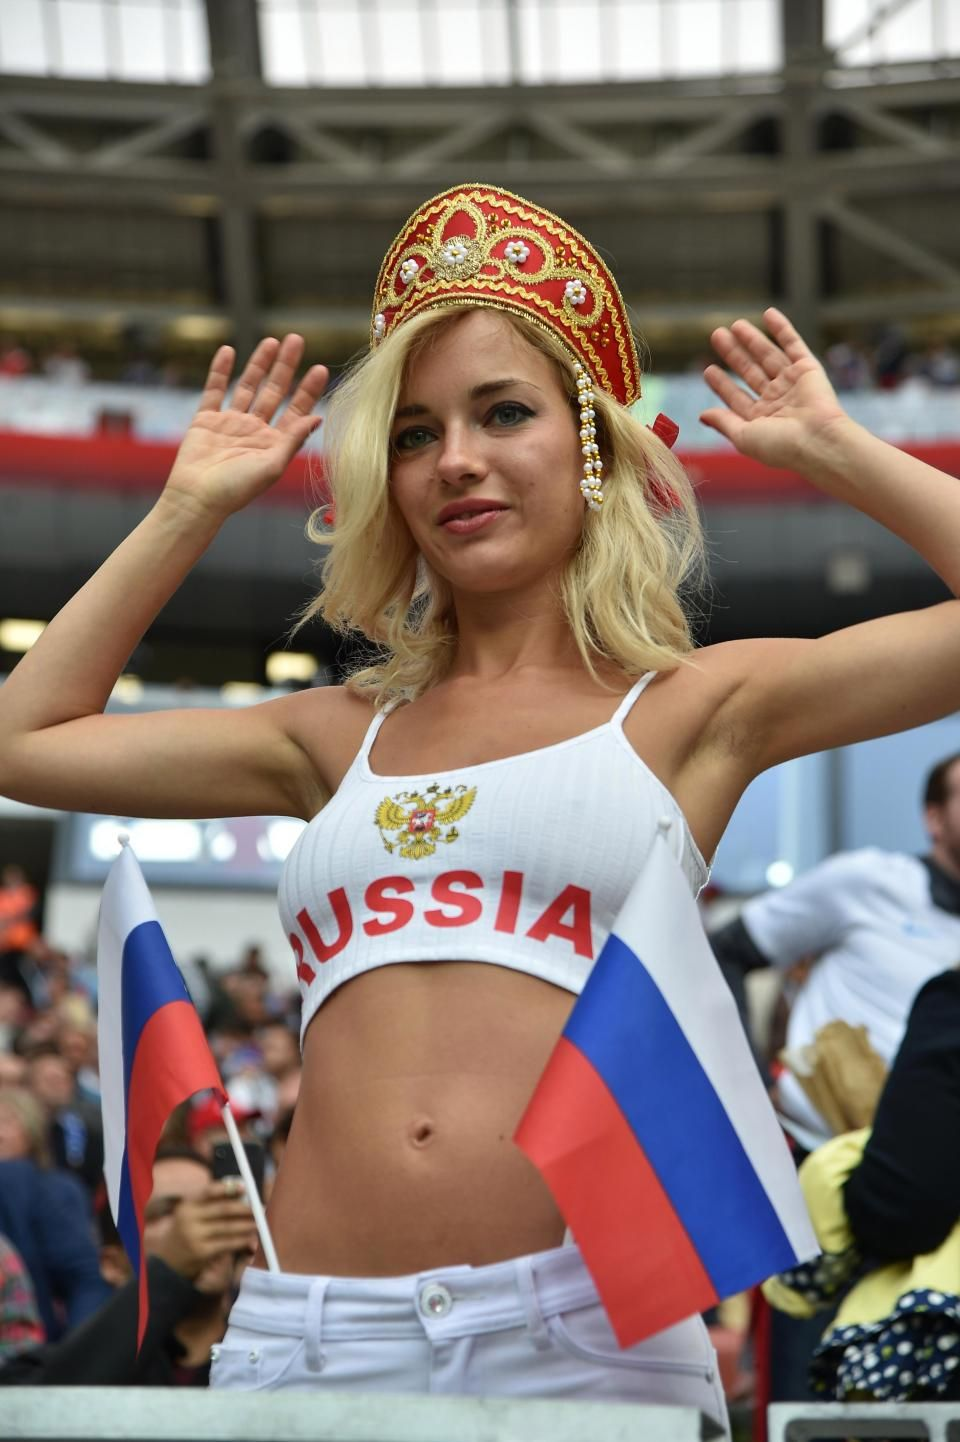 Stunning Female Russia Fans Don Tiny Tops While Saudi Women Wear